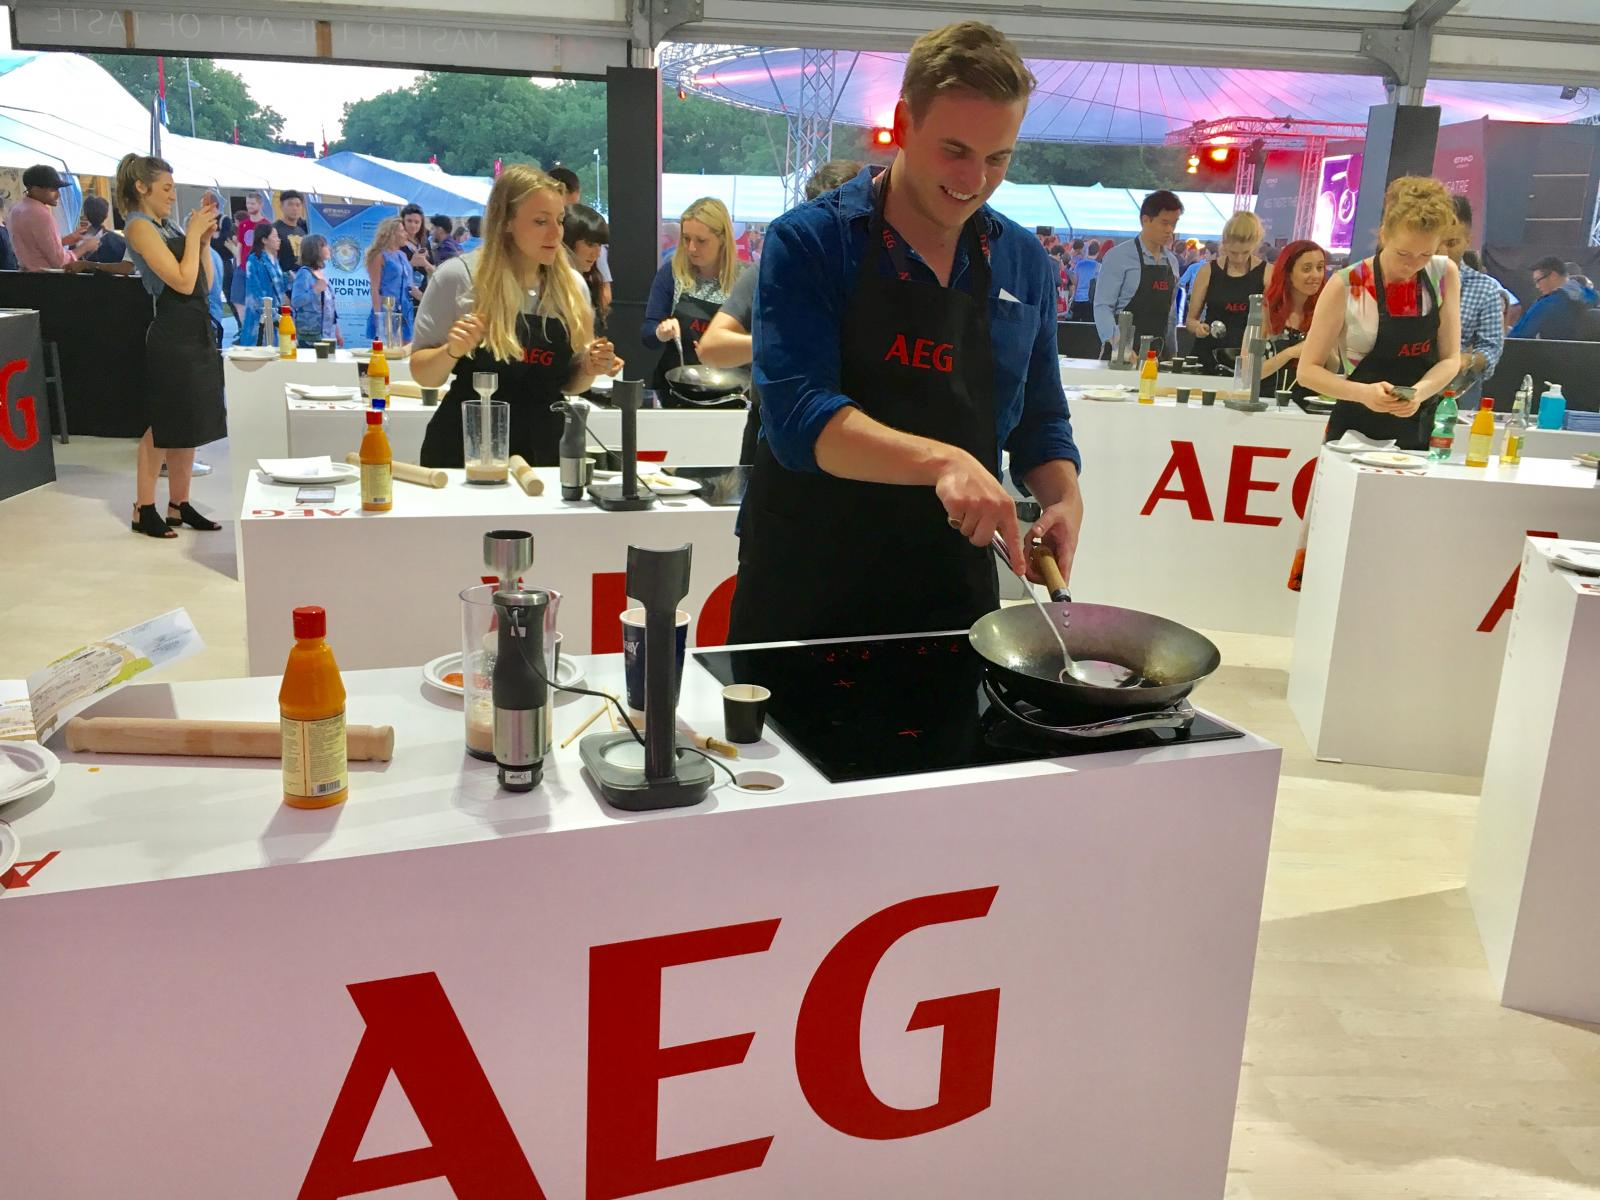 Learning to cook with AEG and School of Wok